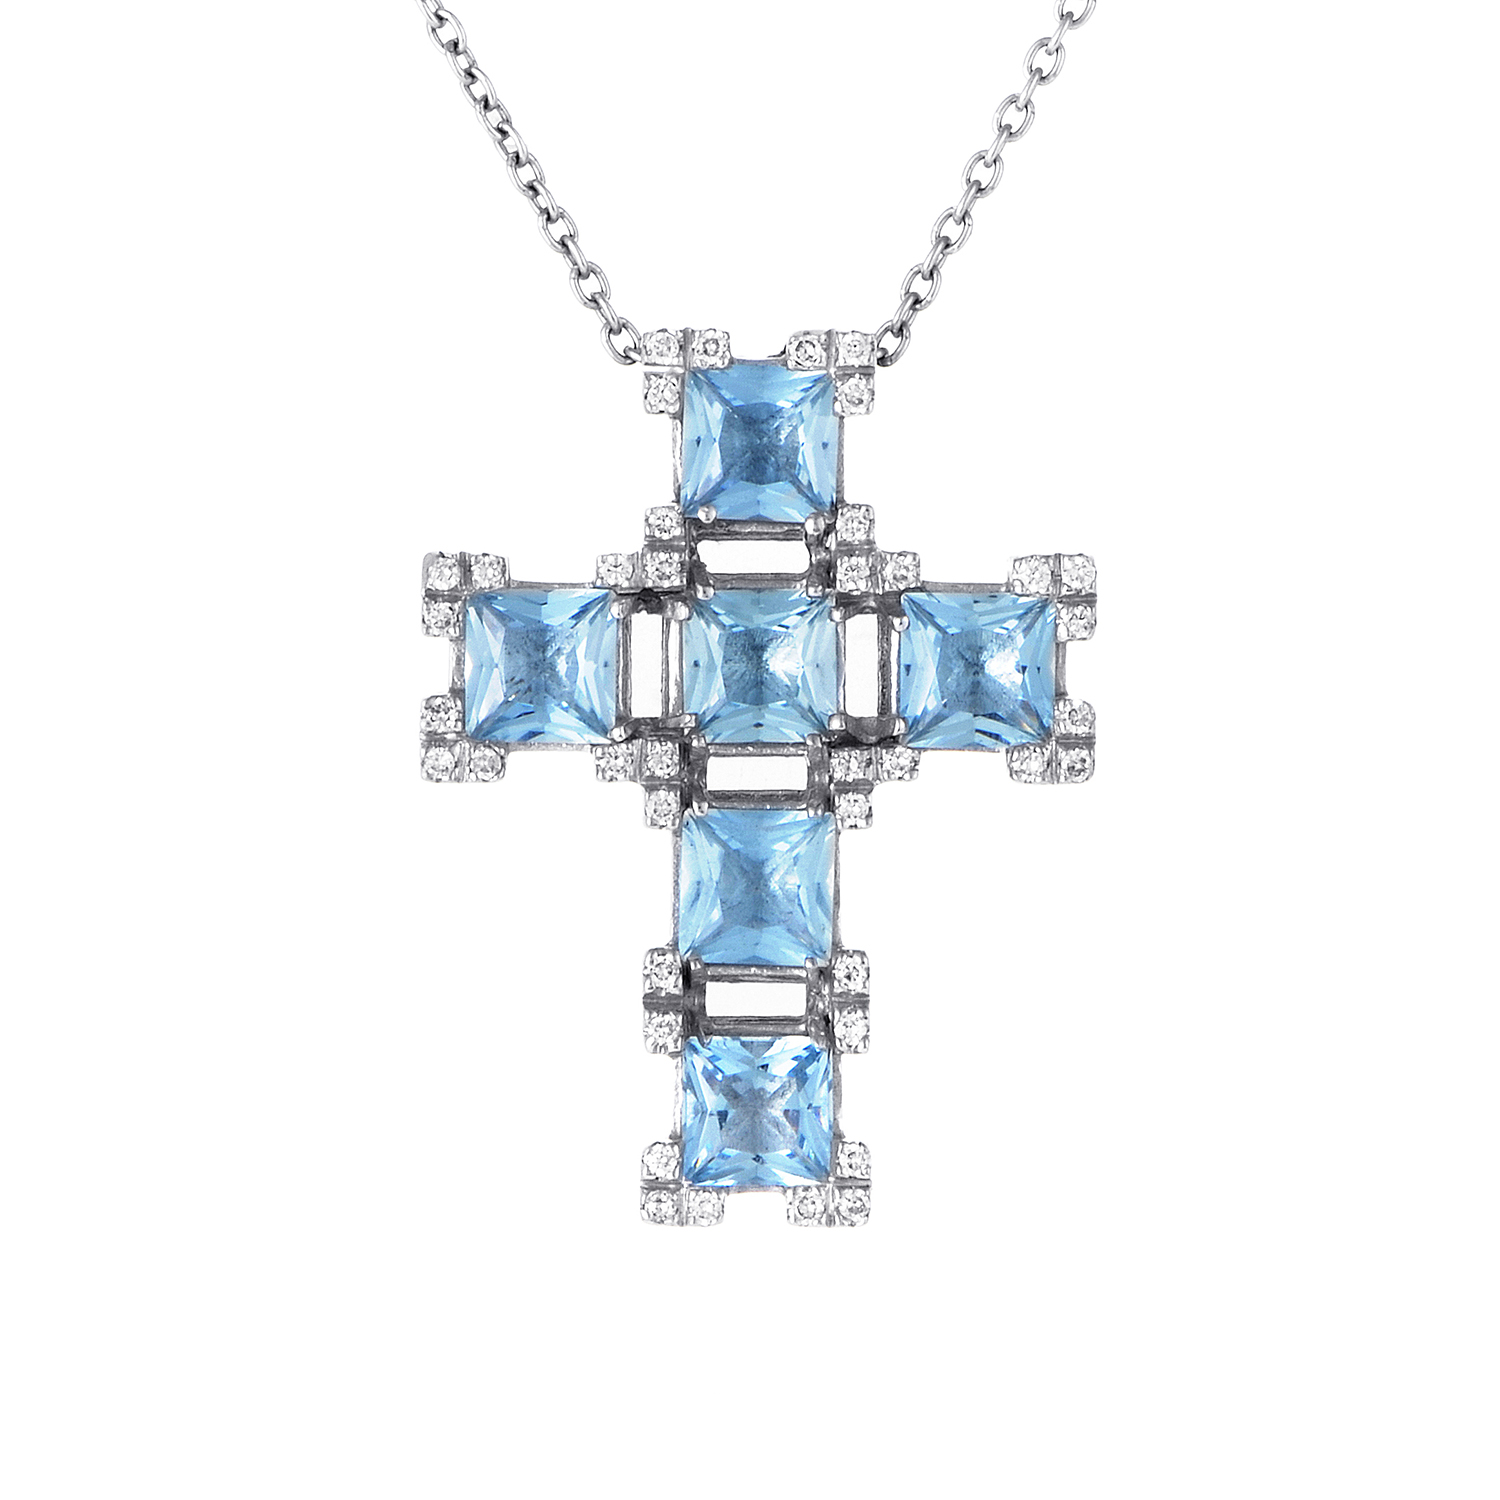 18K White Gold Aquamarine and Diamond Crucifix Pendant Necklace